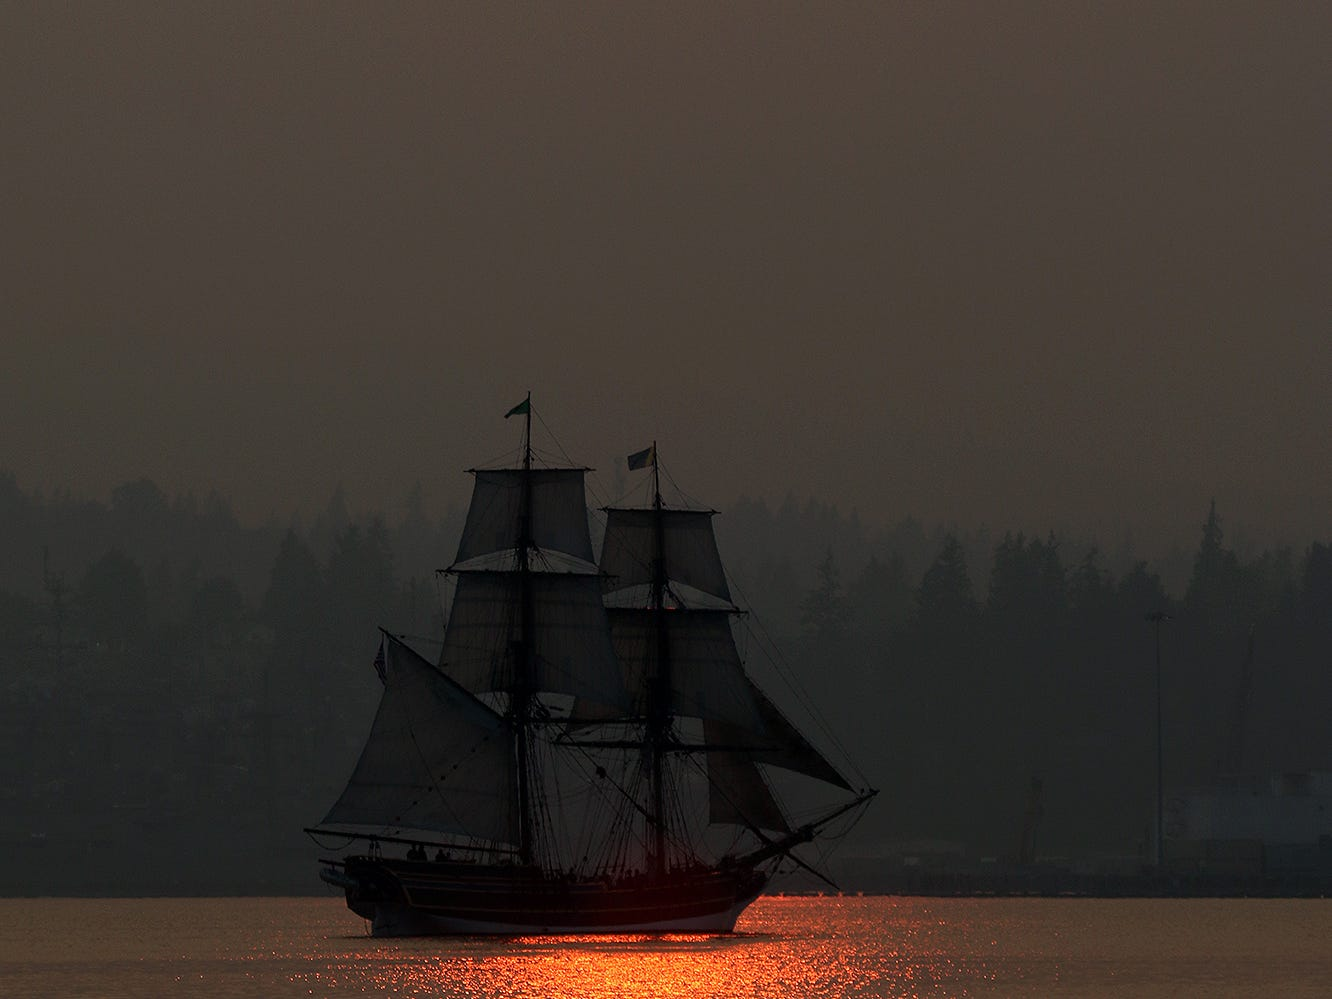 The tall ship Lady Washington sails off Port Orchard through the haze at sunset on Tuesday August 14, 2018.